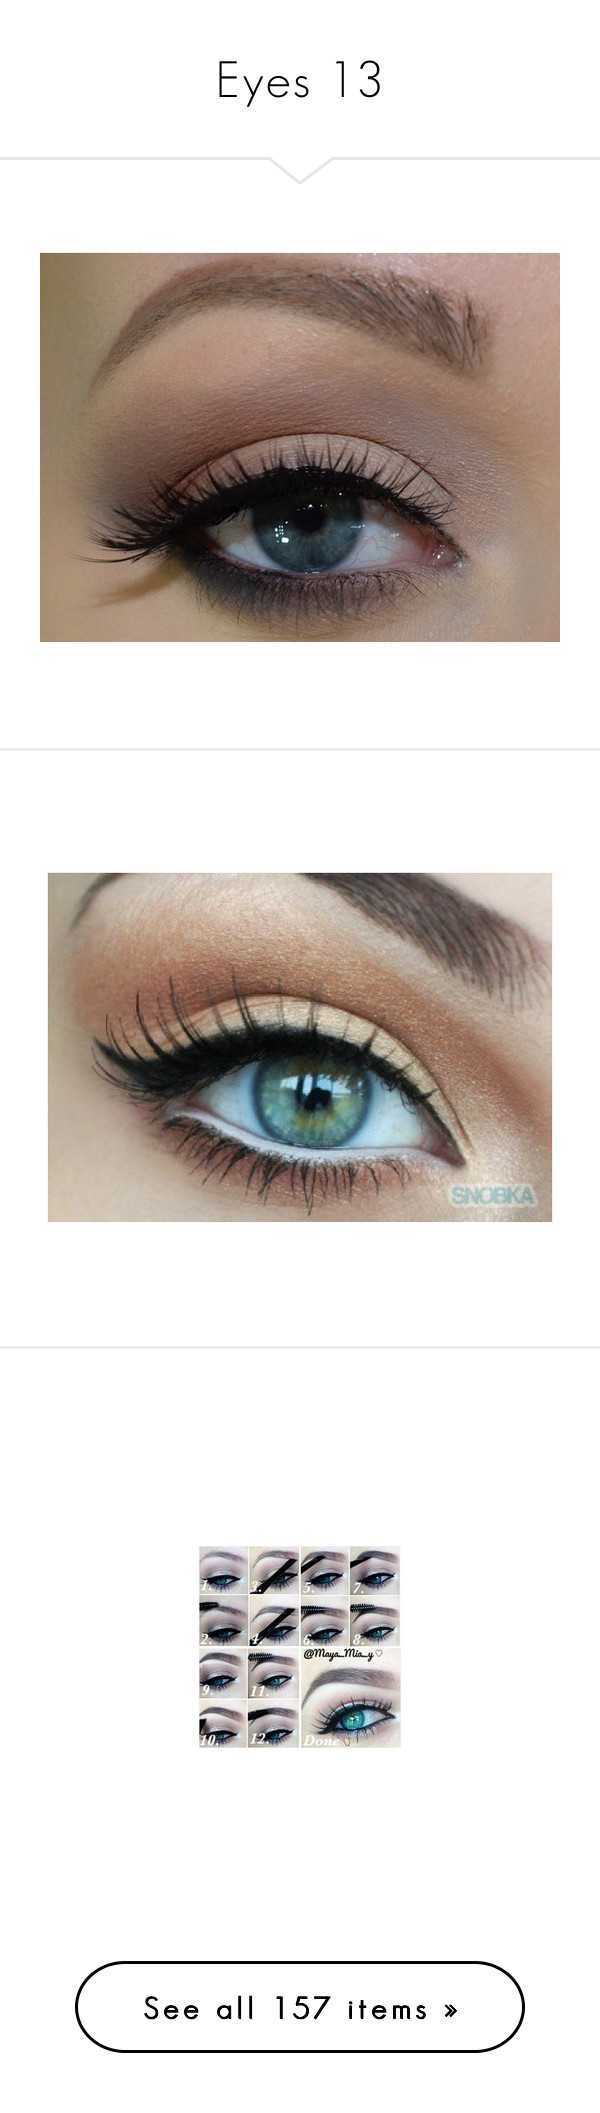 """""""Eyes 13"""" by o-hugsandkisses-x ❤ liked on Polyvore featuring beauty products, makeup, eye makeup, eyes, beauty, maquiagem, palette makeup, make, brow makeup and highlight makeup"""